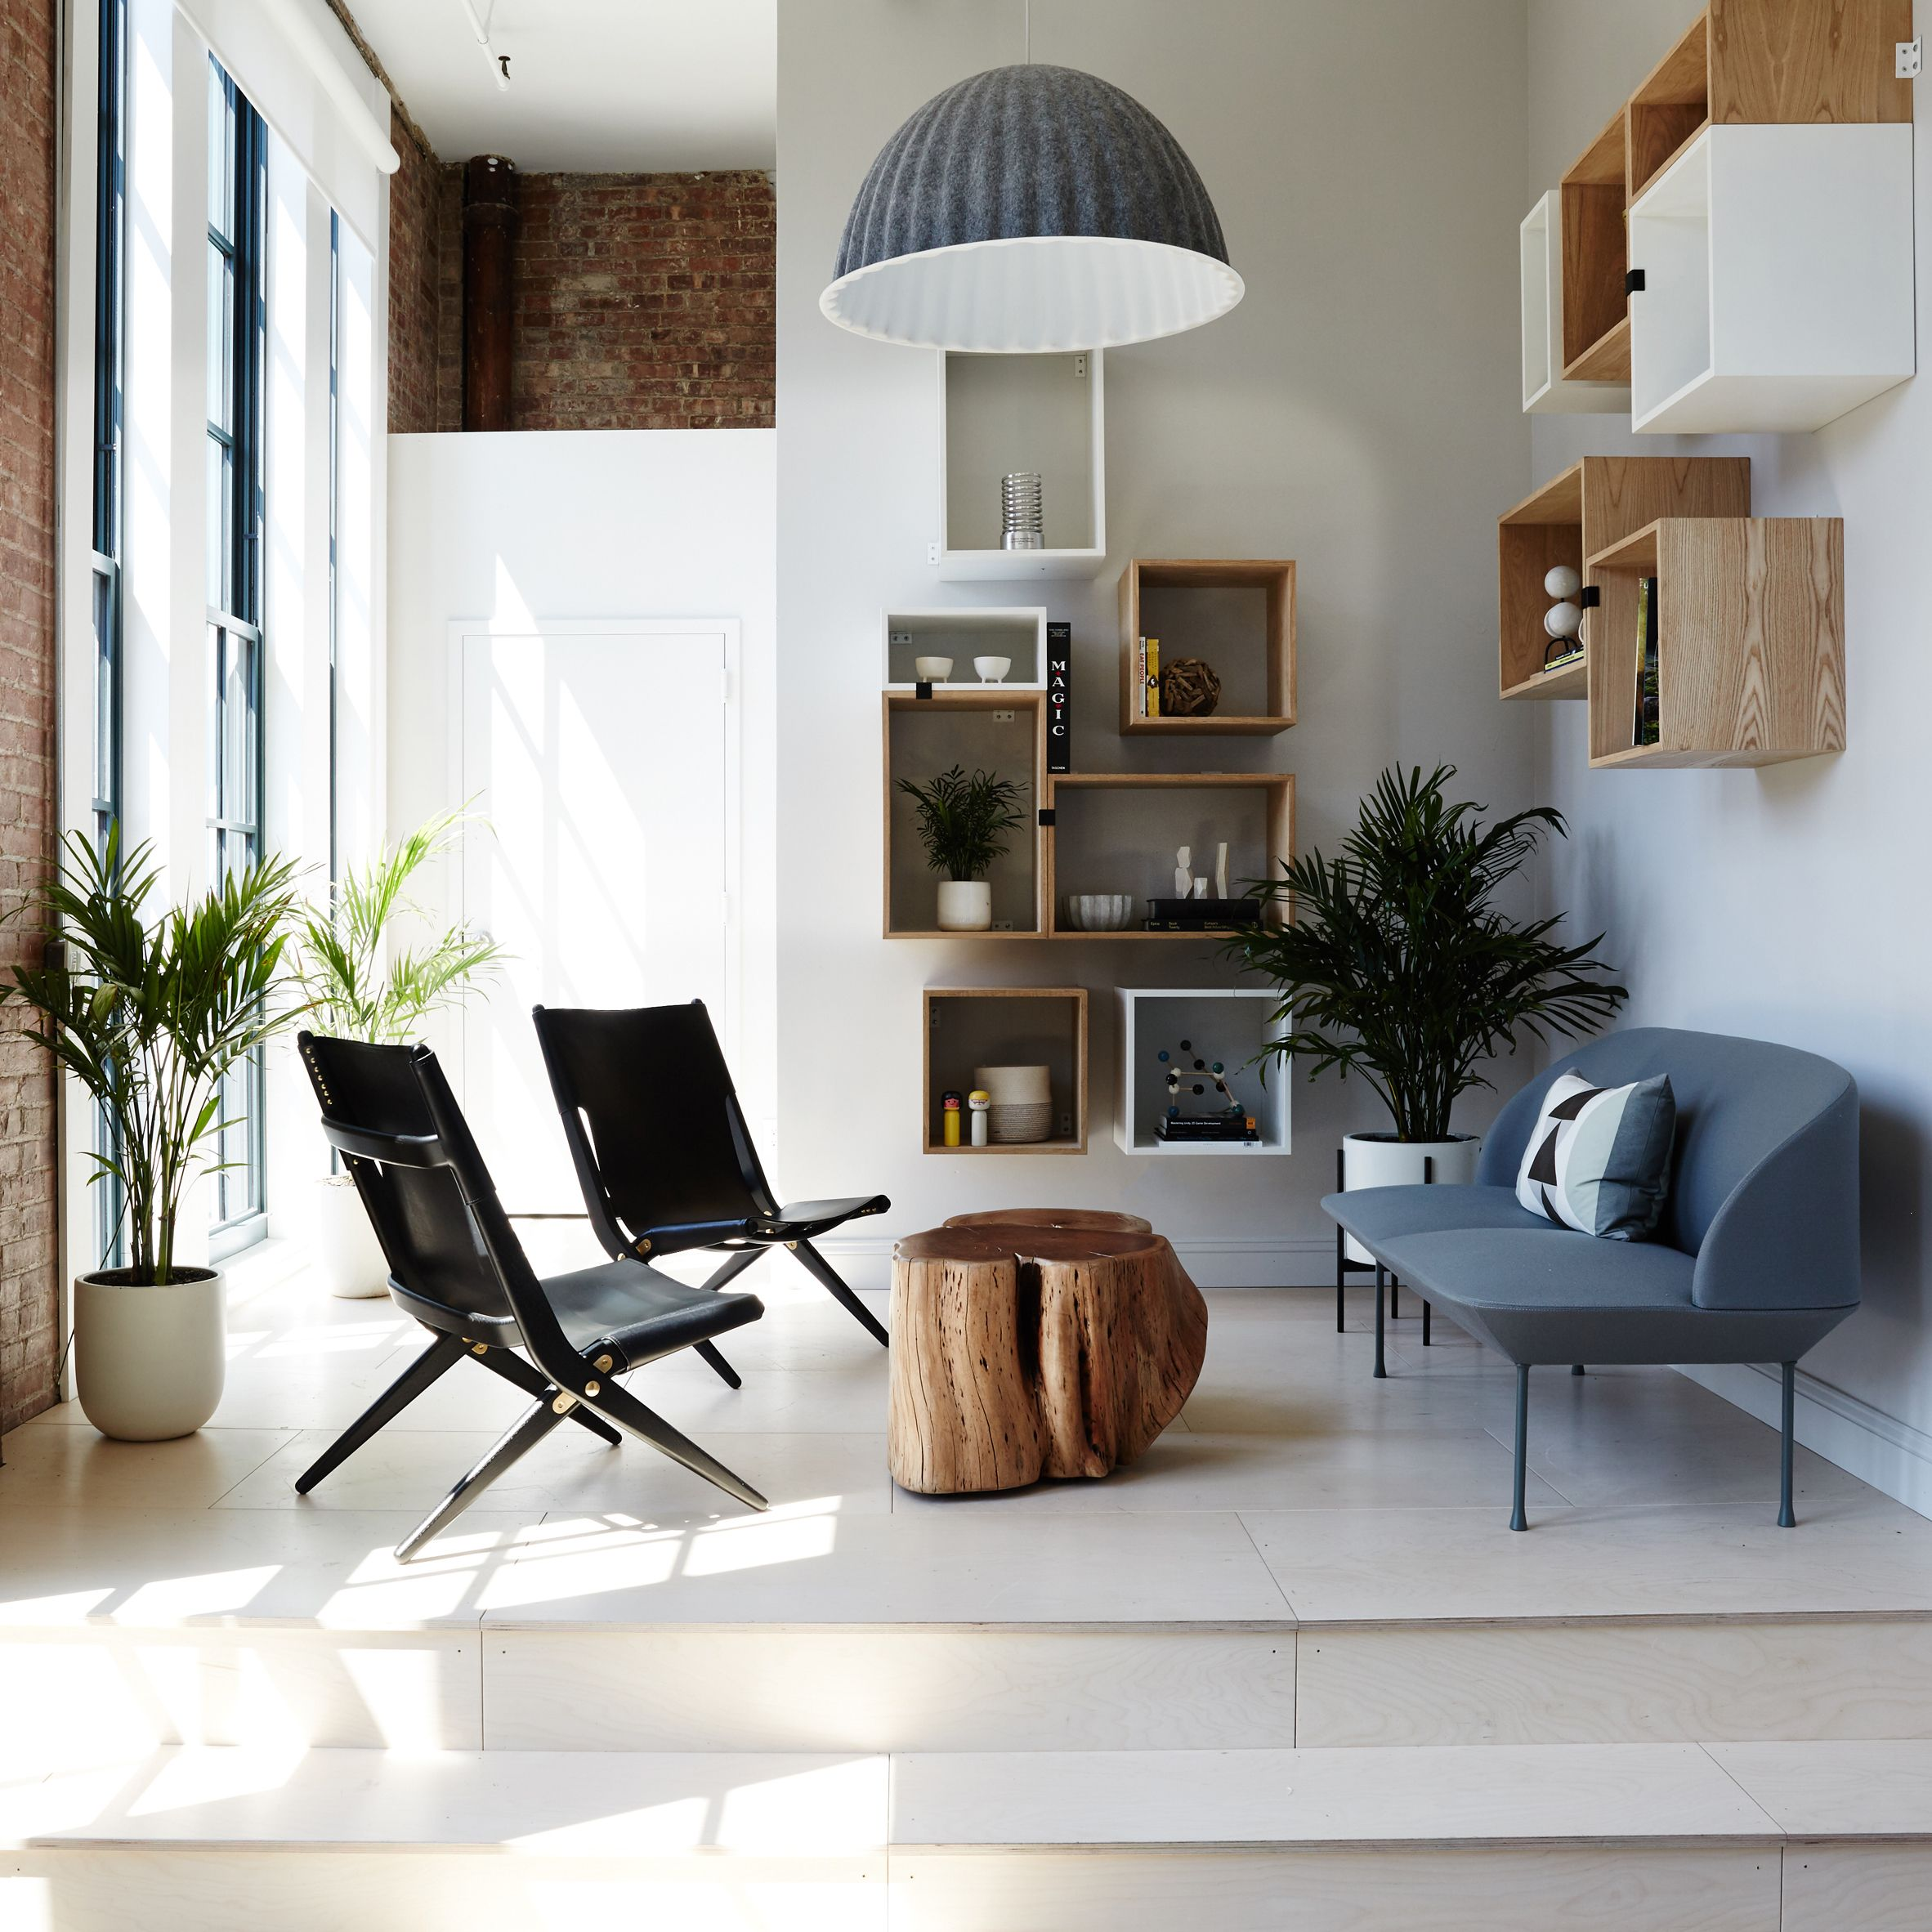 Designer Sheena Murphy Used Plywood Black Steel And Felt For The Scandinavian Influenced Office Dots Company Behind Two Co